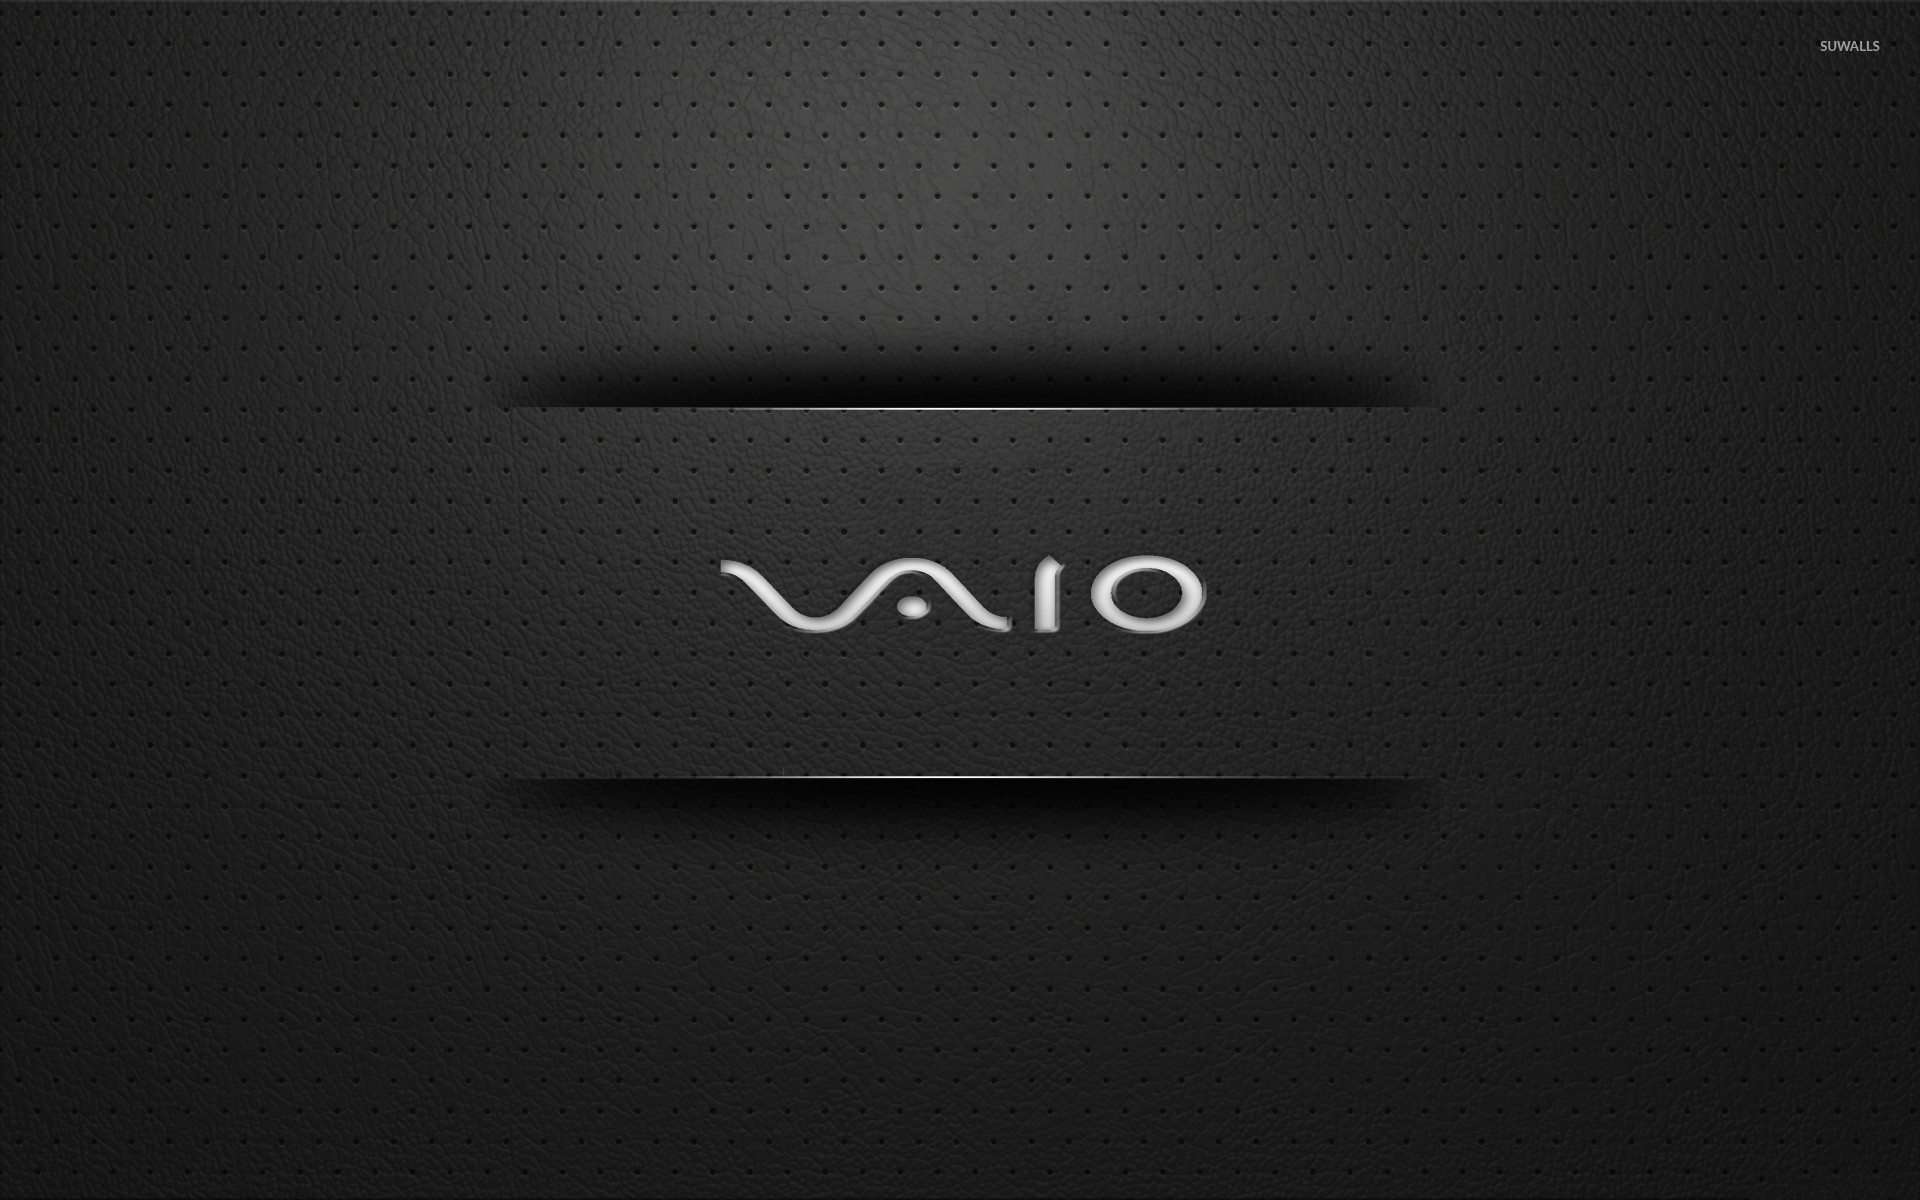 Vaio Wall Paper Black: Sony Vaio Wallpaper 1366x768